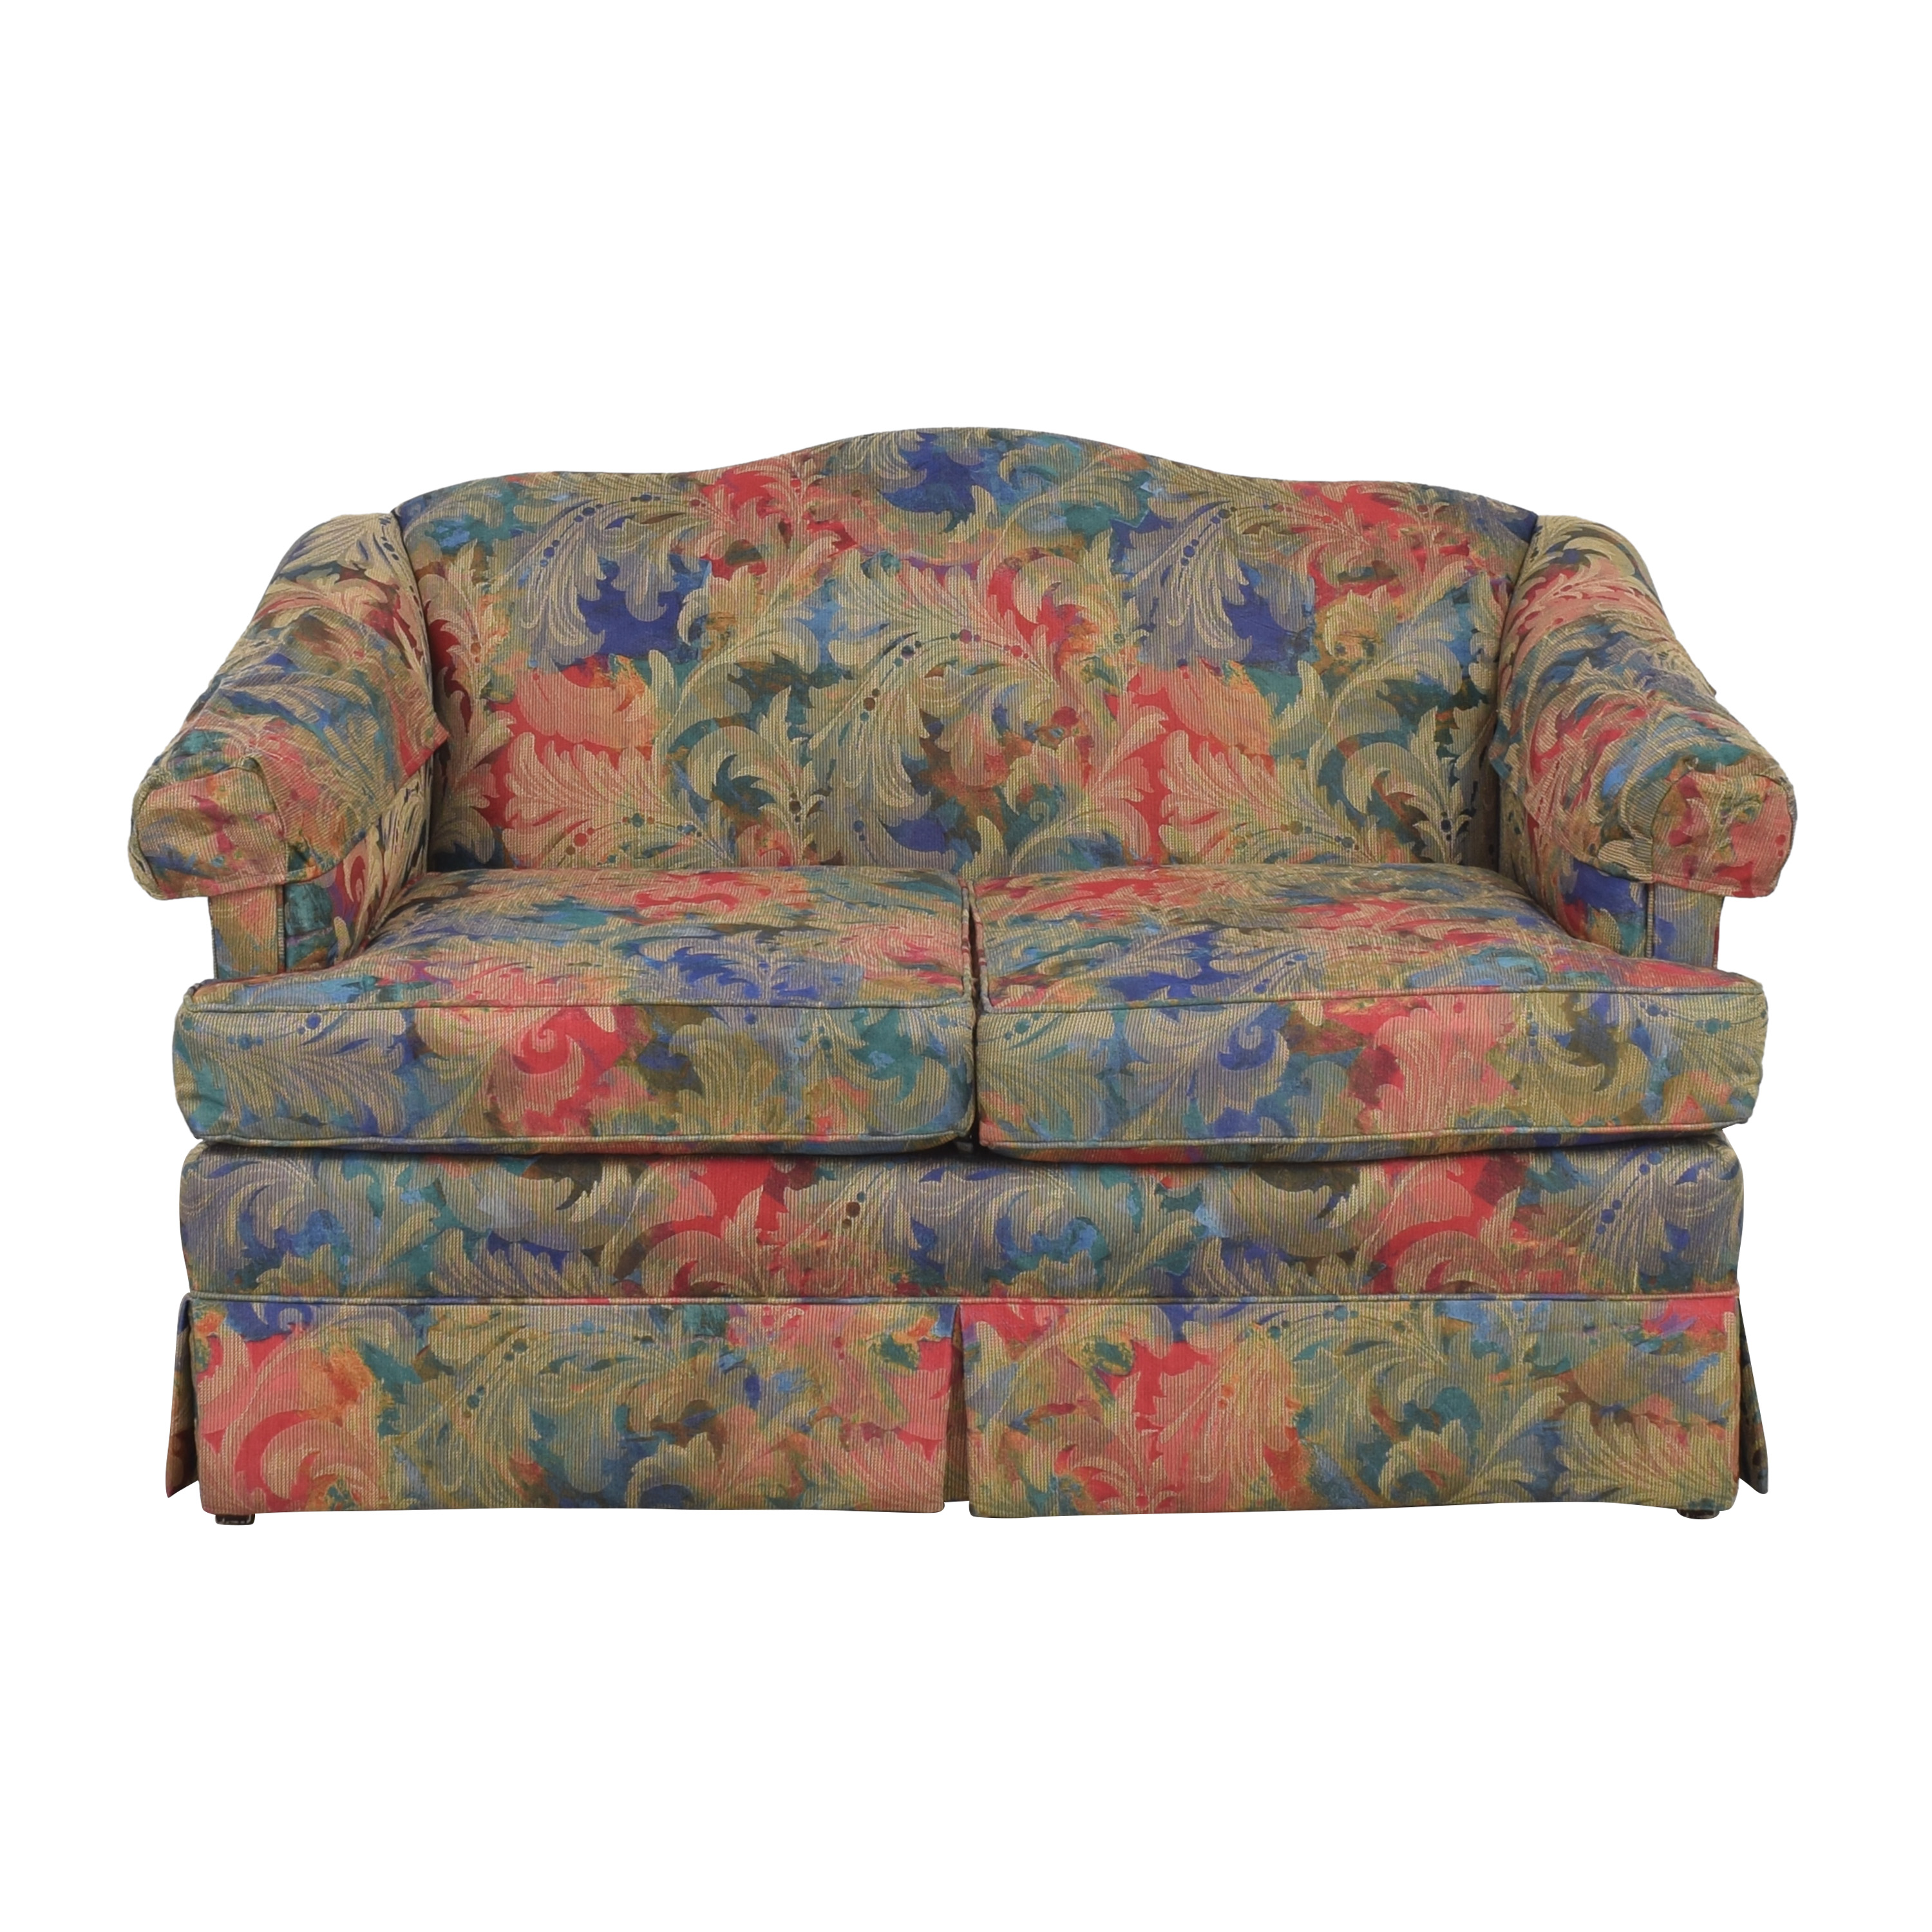 Broyhill Furniture Broyhill Floral Upholstered Loveseat nj